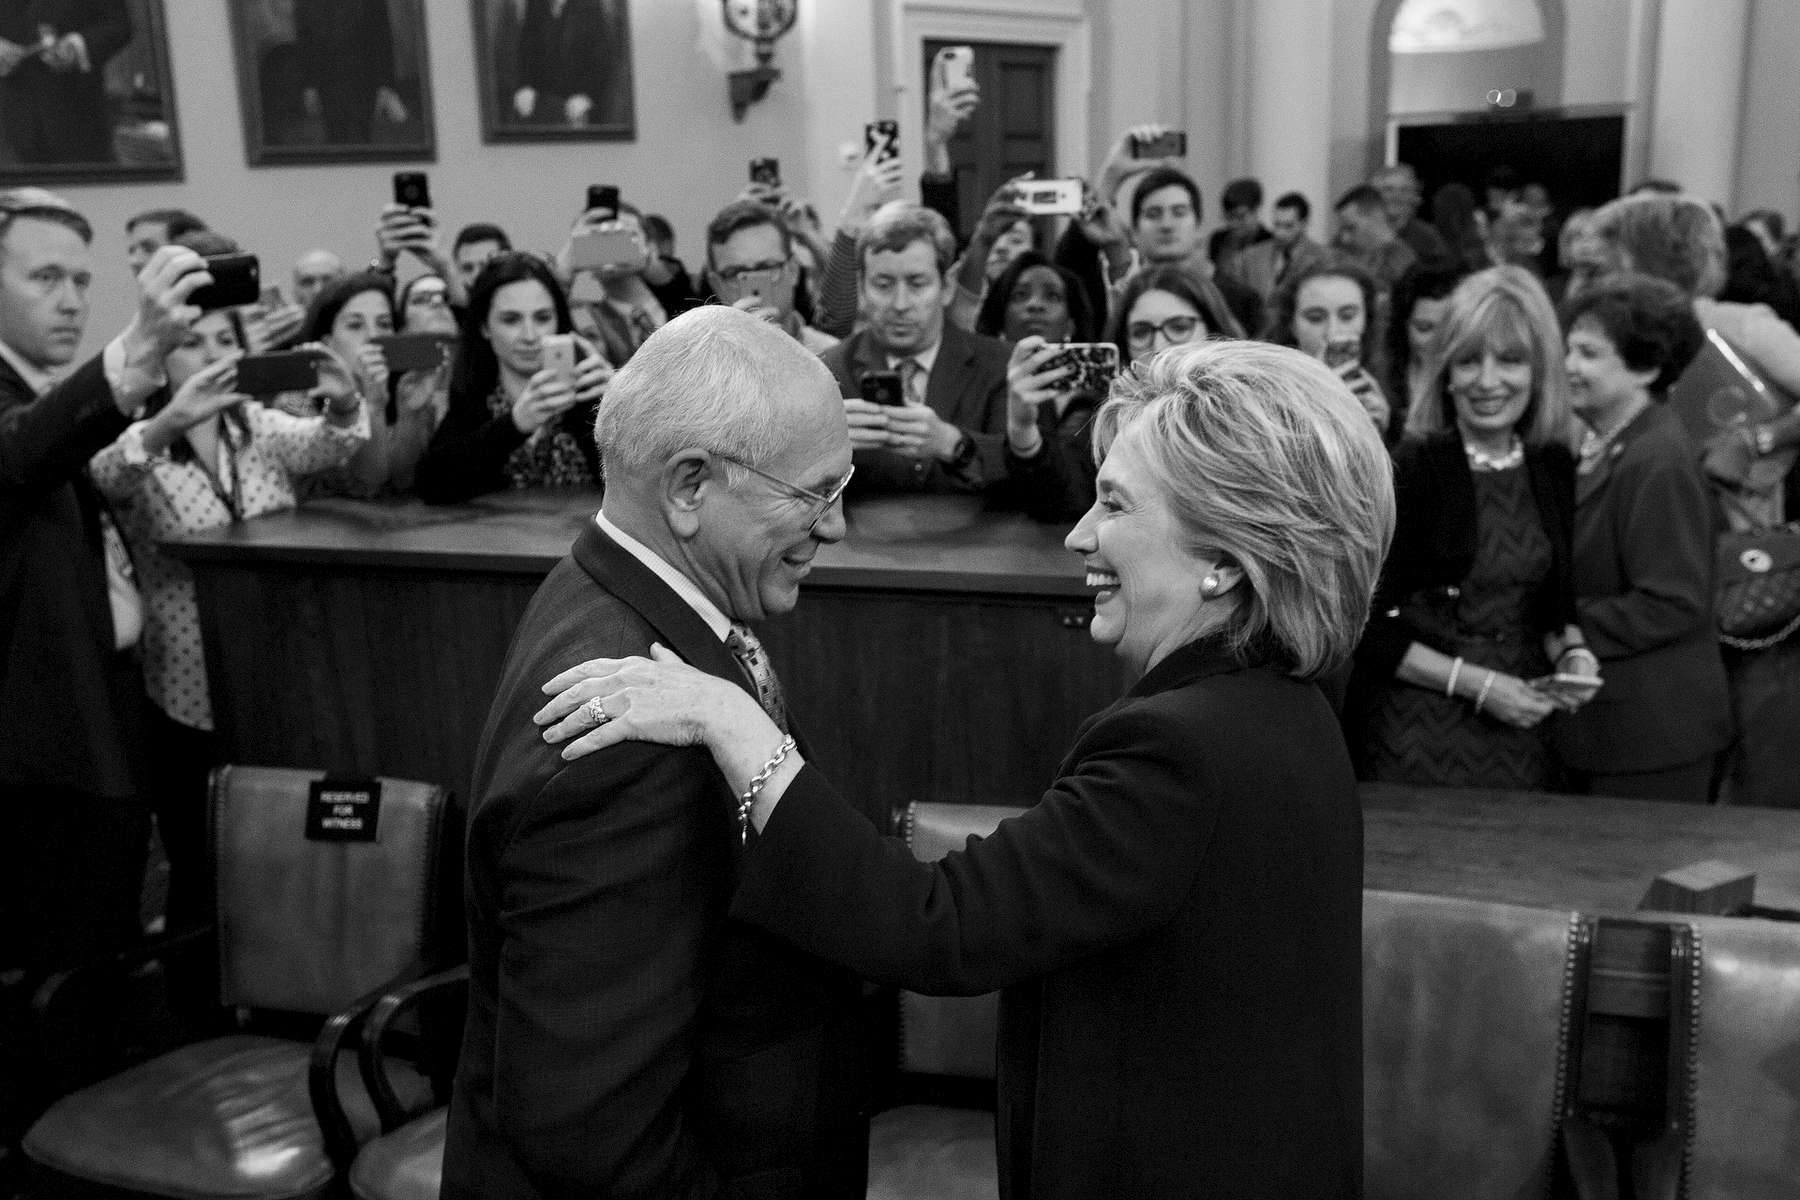 Student Photographer of the Year: Runner UpAl Drago, Elon UniversityDemocratic presidential candidate and former Secretary of State Hillary Rodham Clinton, greets Rep. Paul Tonko, D-N.Y., after testifying before the House Select Committee on Benghazi, on Capitol Hill in Washington, Thursday, Oct. 22, 2015. Clinton is being investigated by a Republican-led committee on the deadly 2012 Benghazi, Libya attacks.